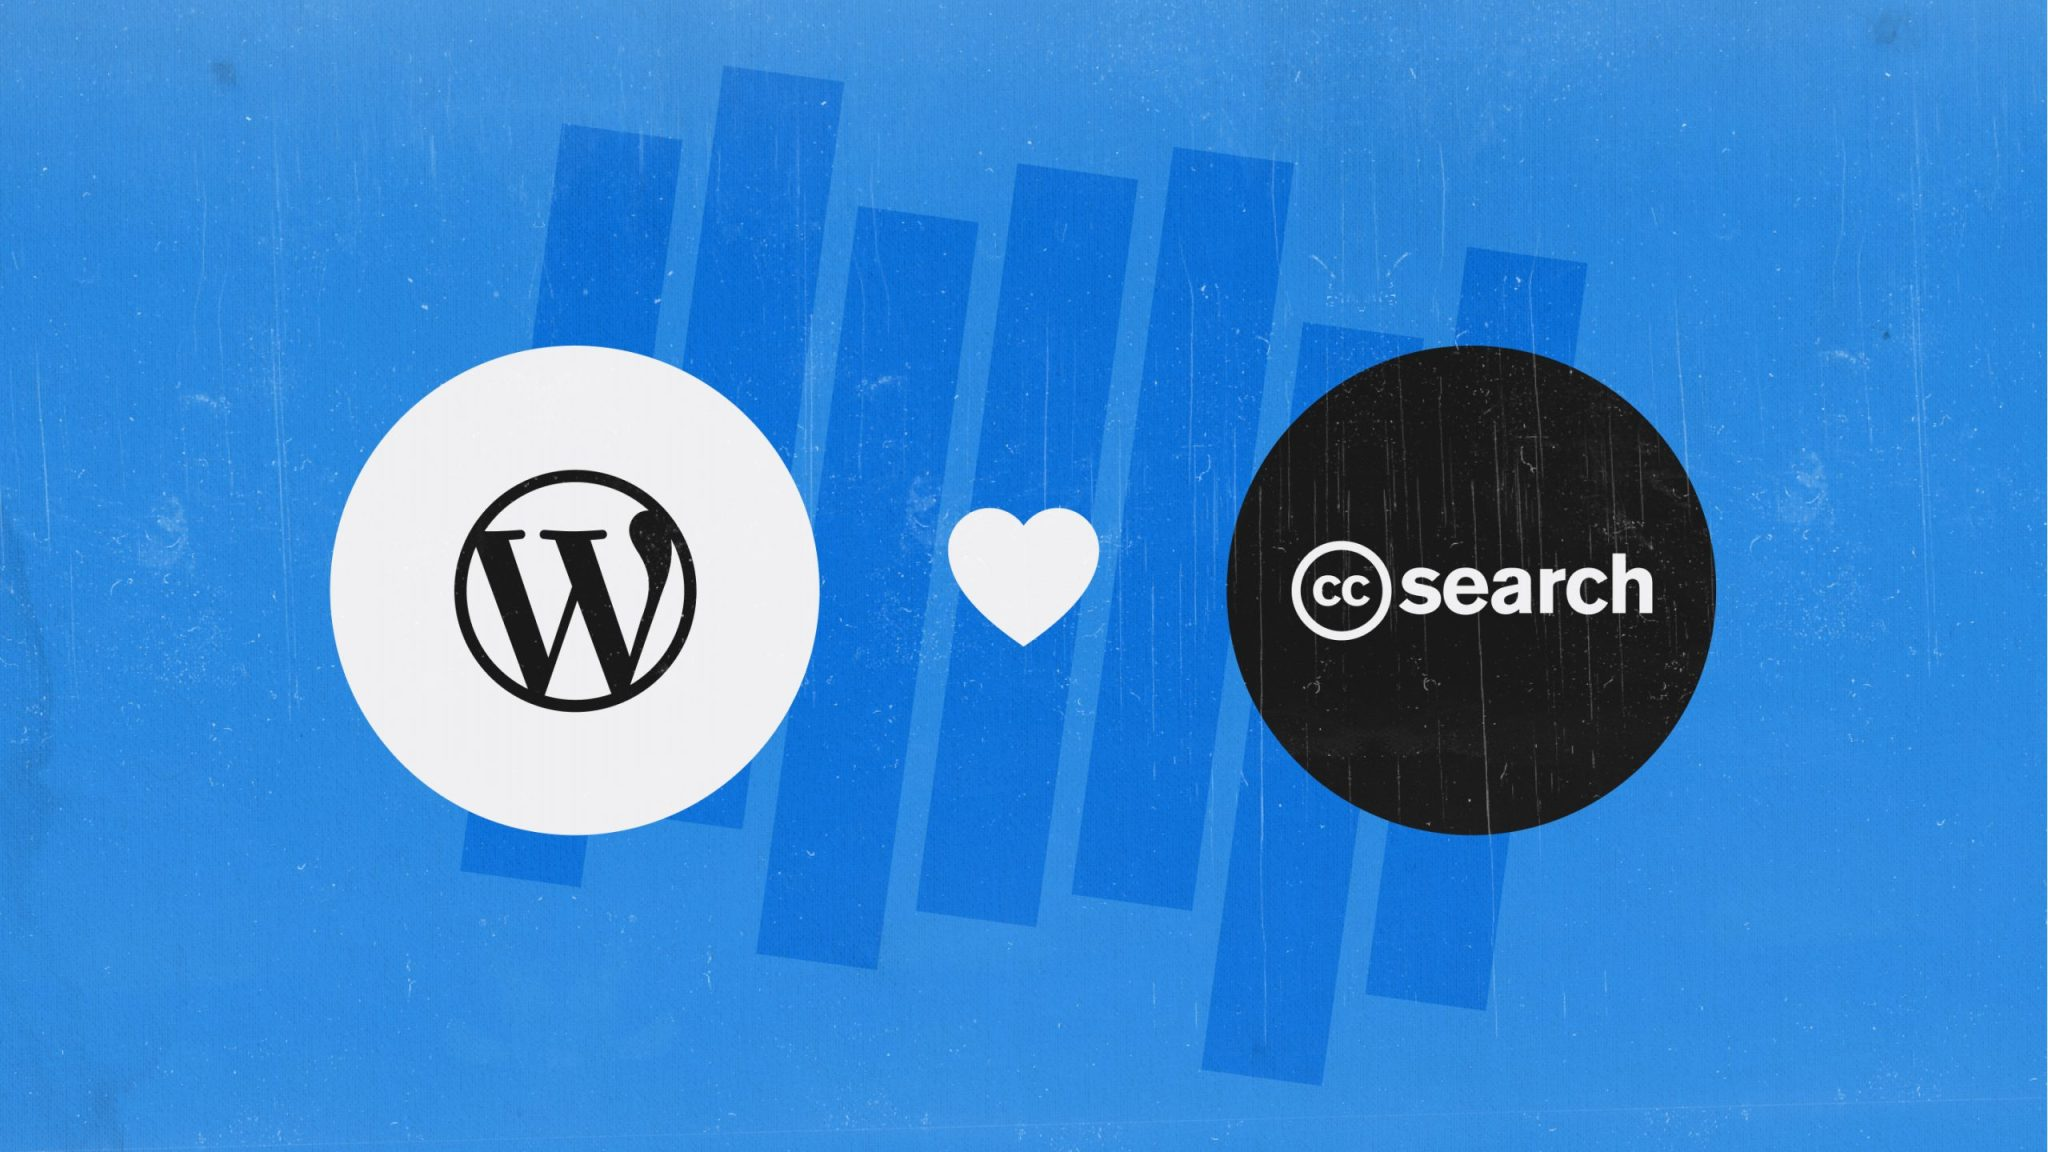 CC Search to join WordPress.org